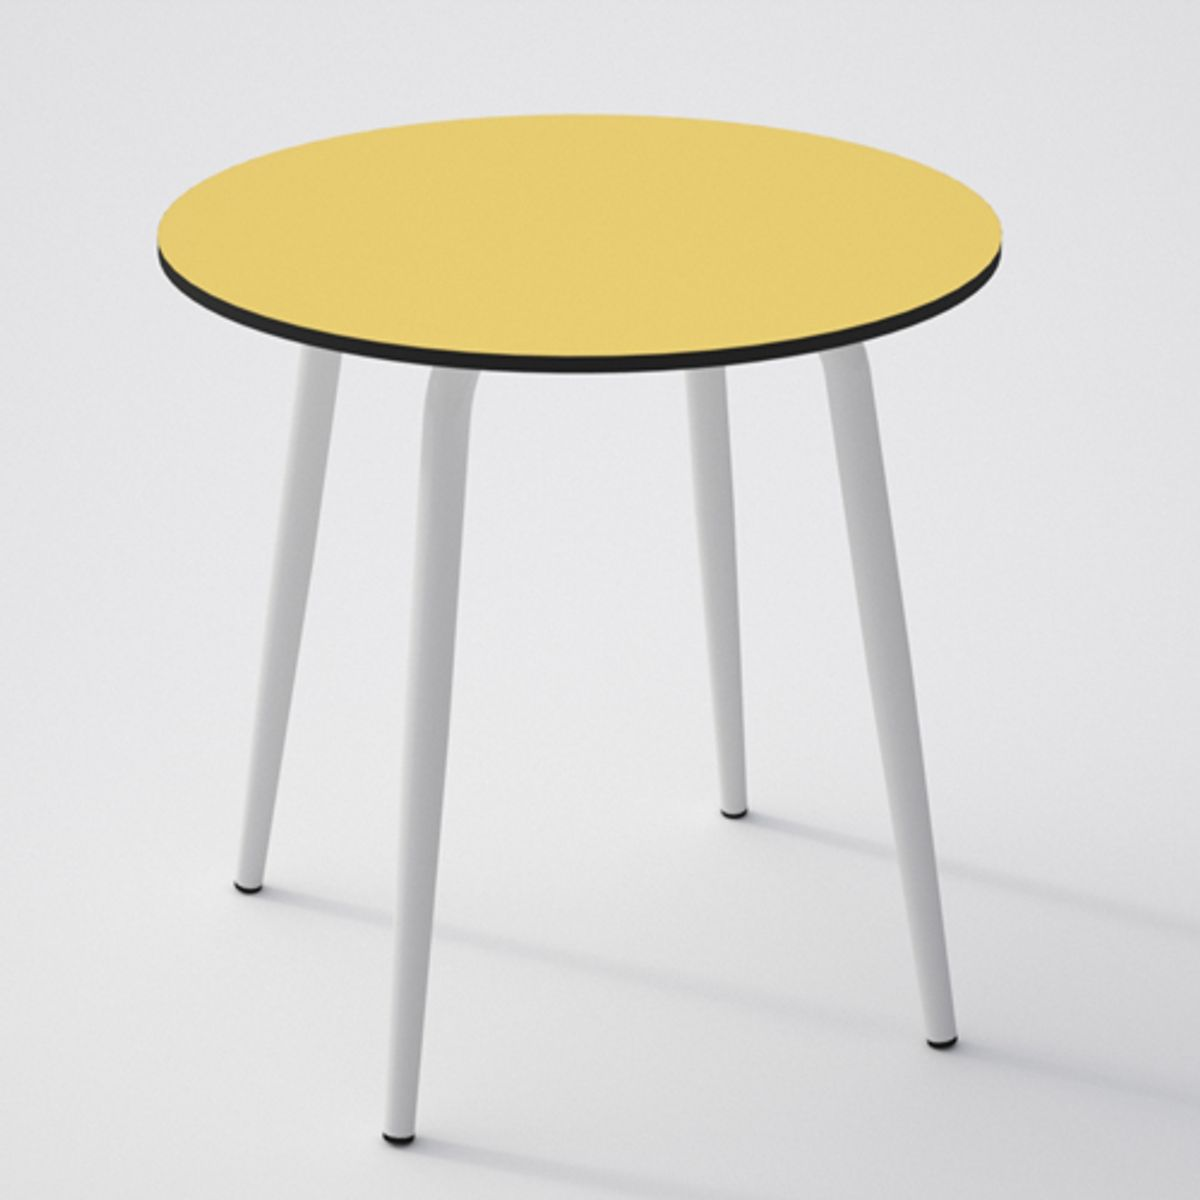 Table de cuisine ronde en formica d70 l on les gambettes for Table de cuisine formica